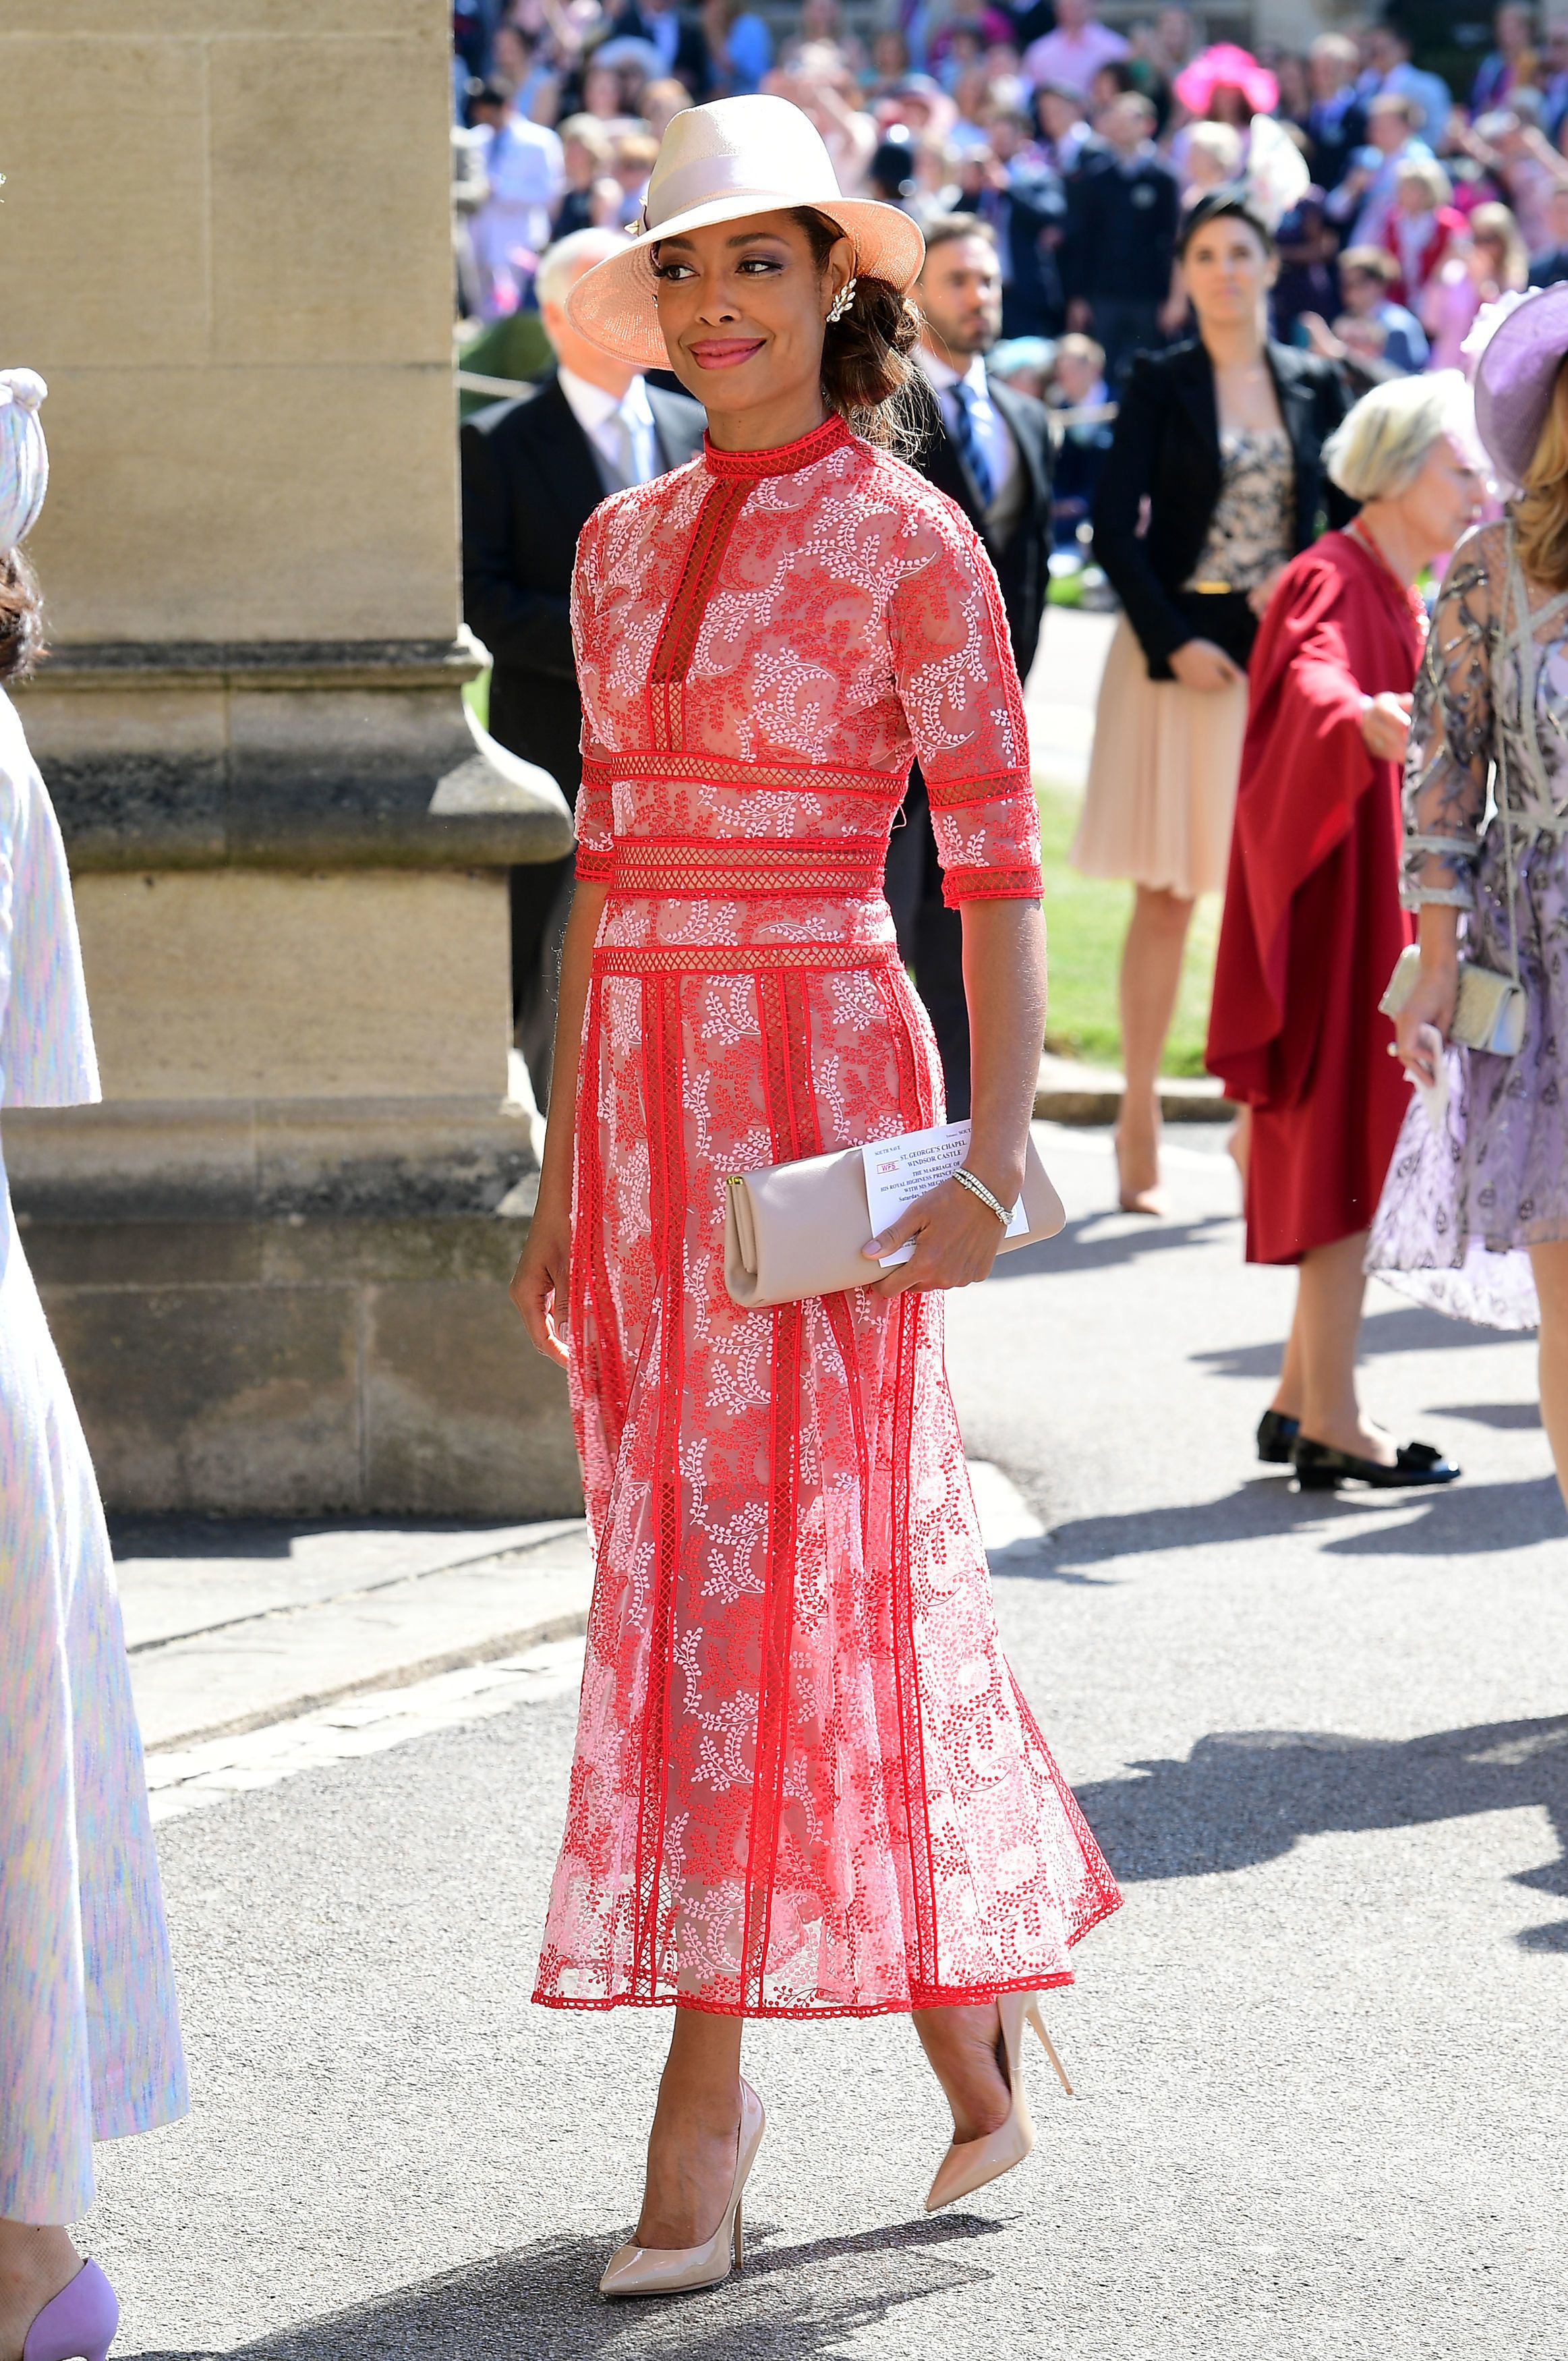 Royal Wedding 2018 Celebrity Guest List - Famous Guests at the Royal ...